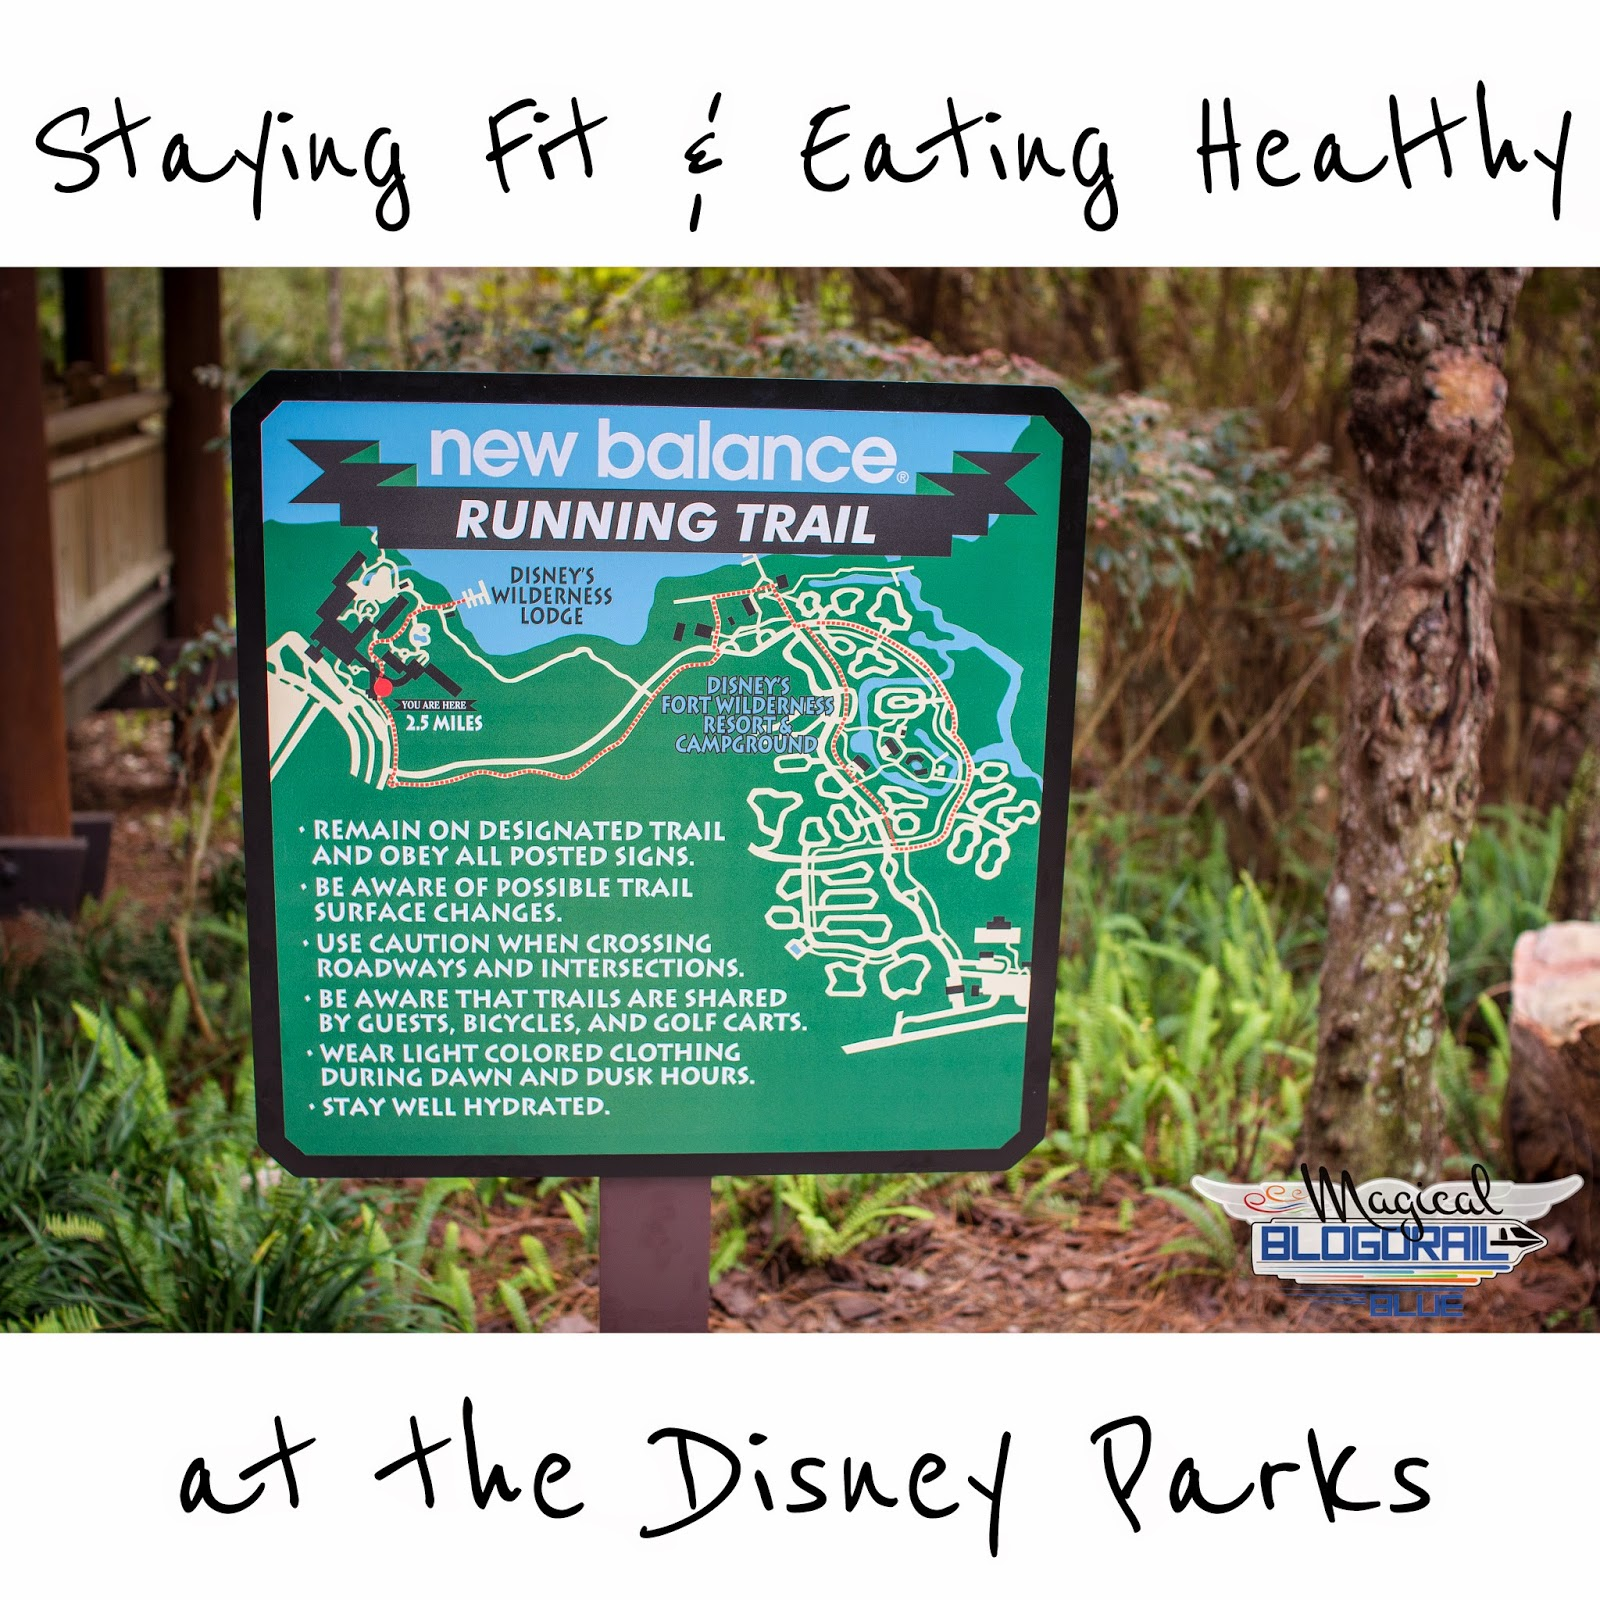 Staying Fit & Eating Healthy at the Disney Parks